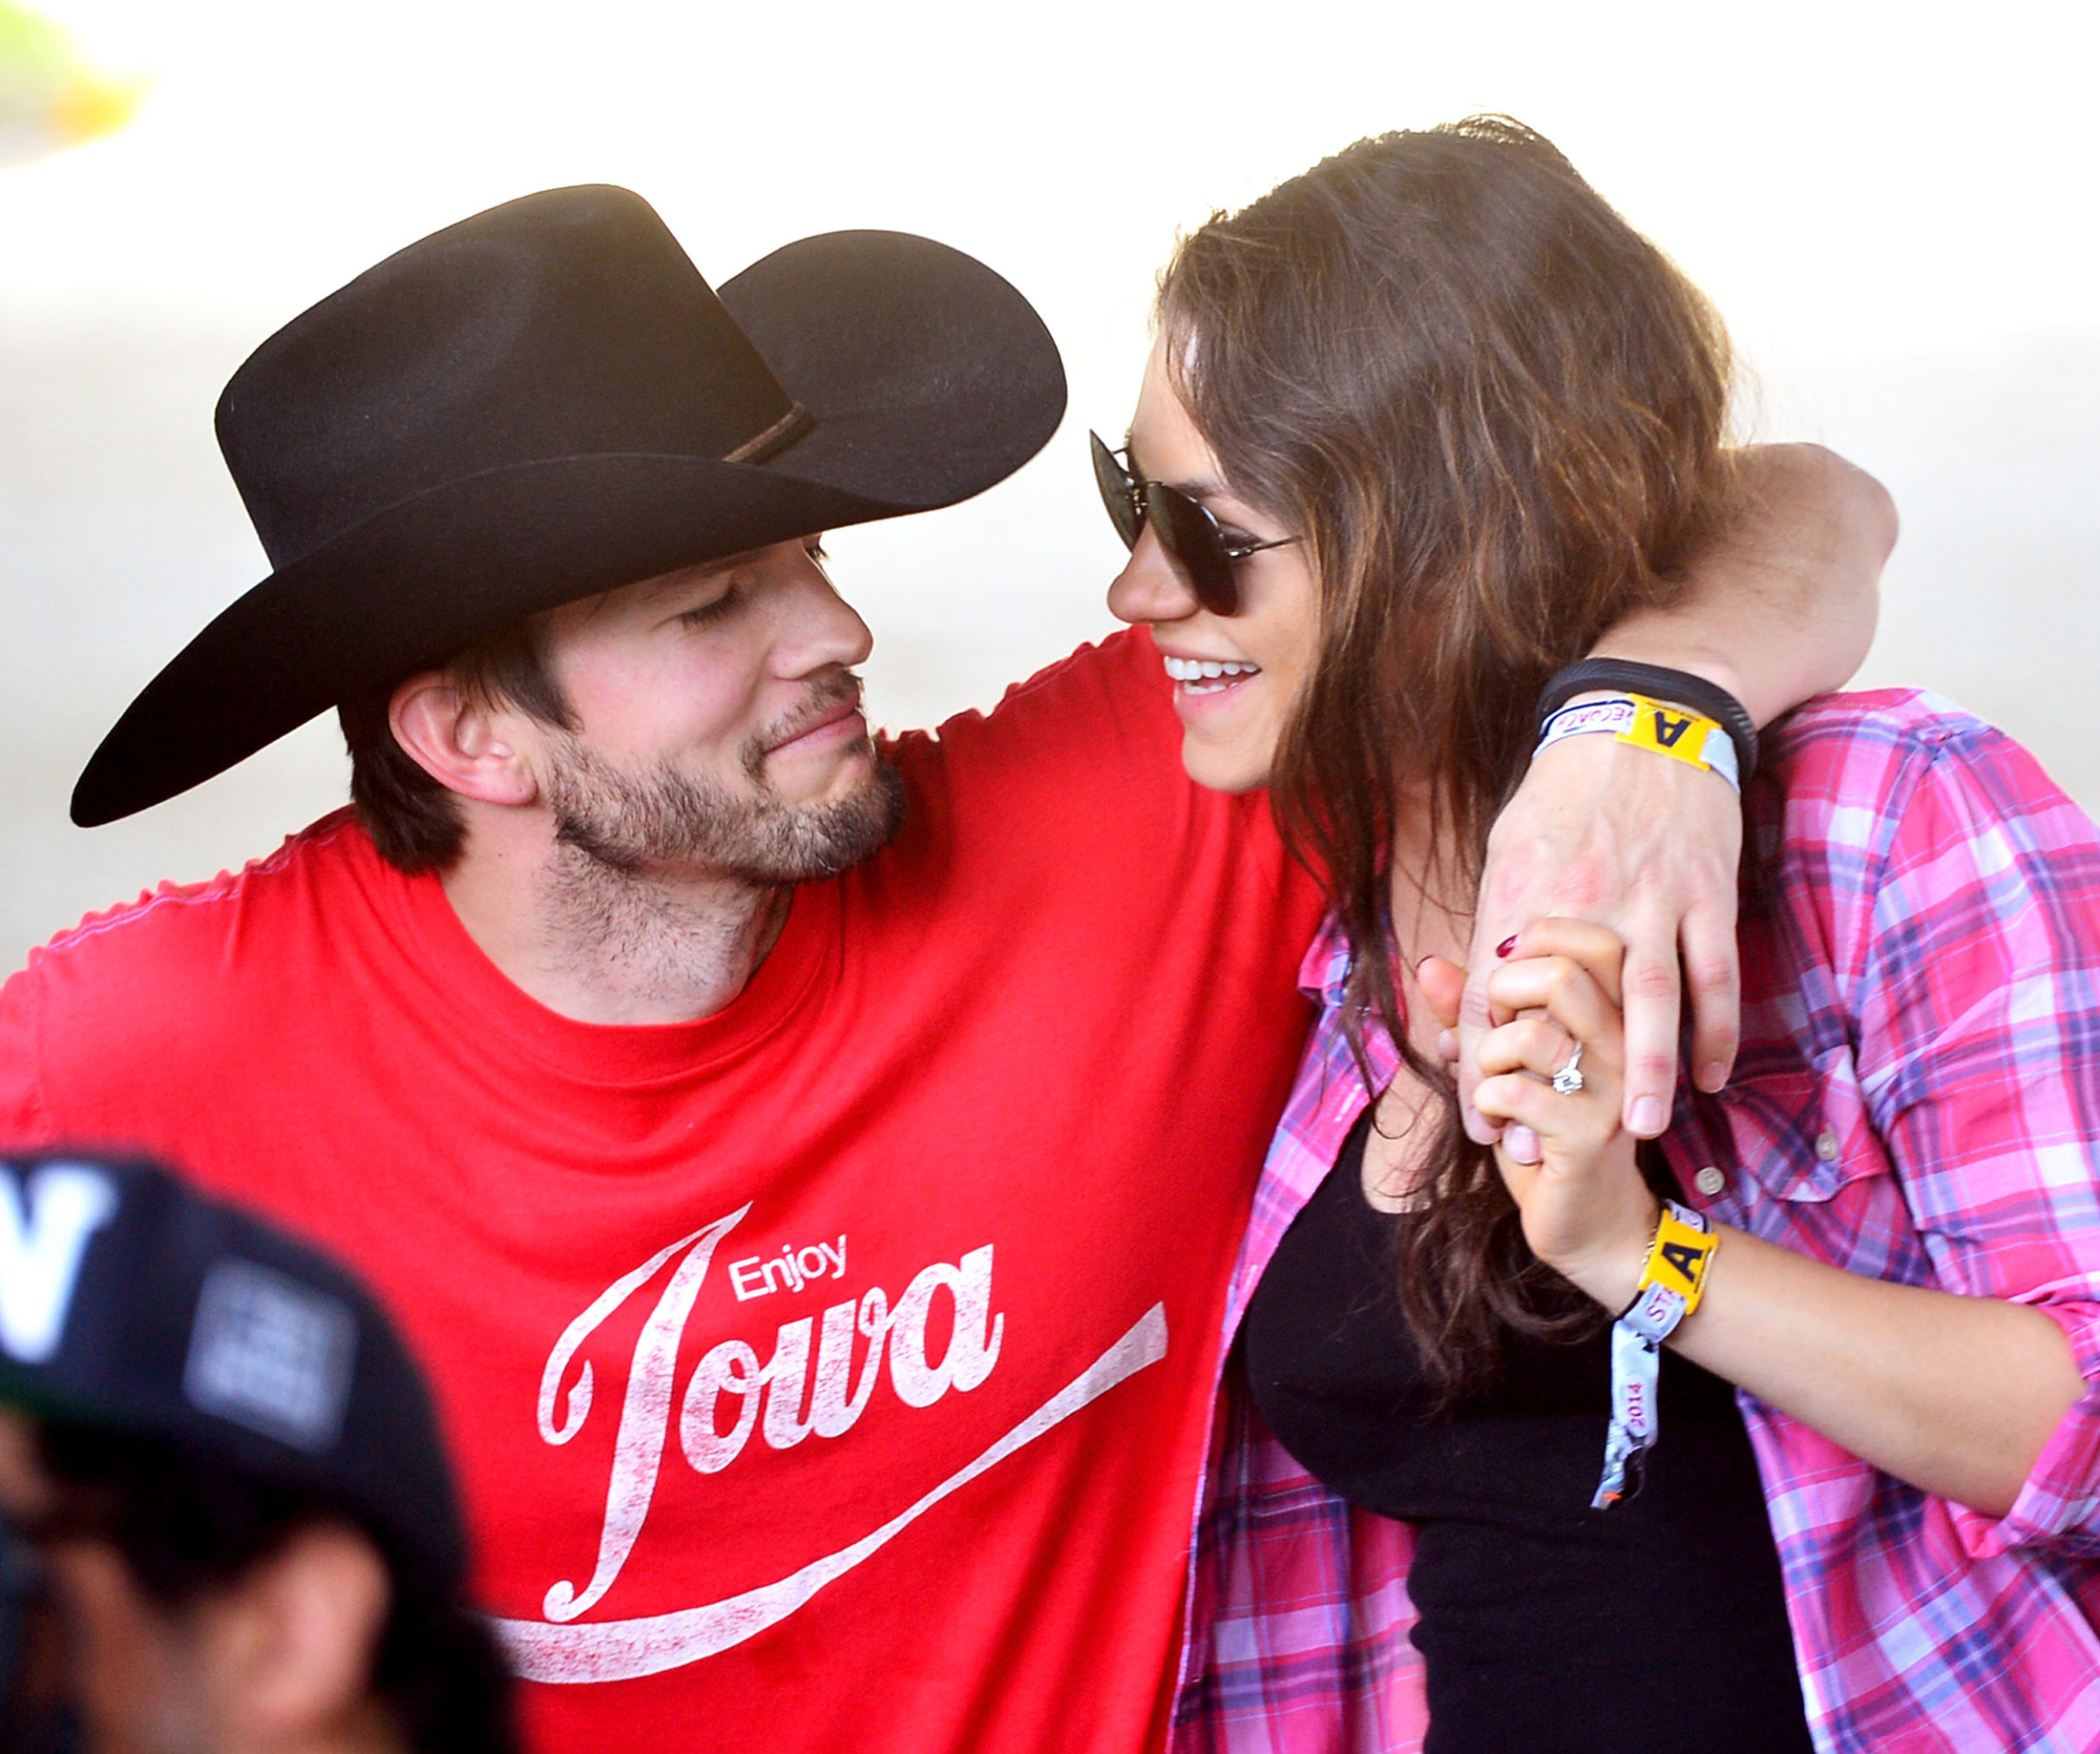 Ashton Kutcher and Mila Kunis - April 25, 2014